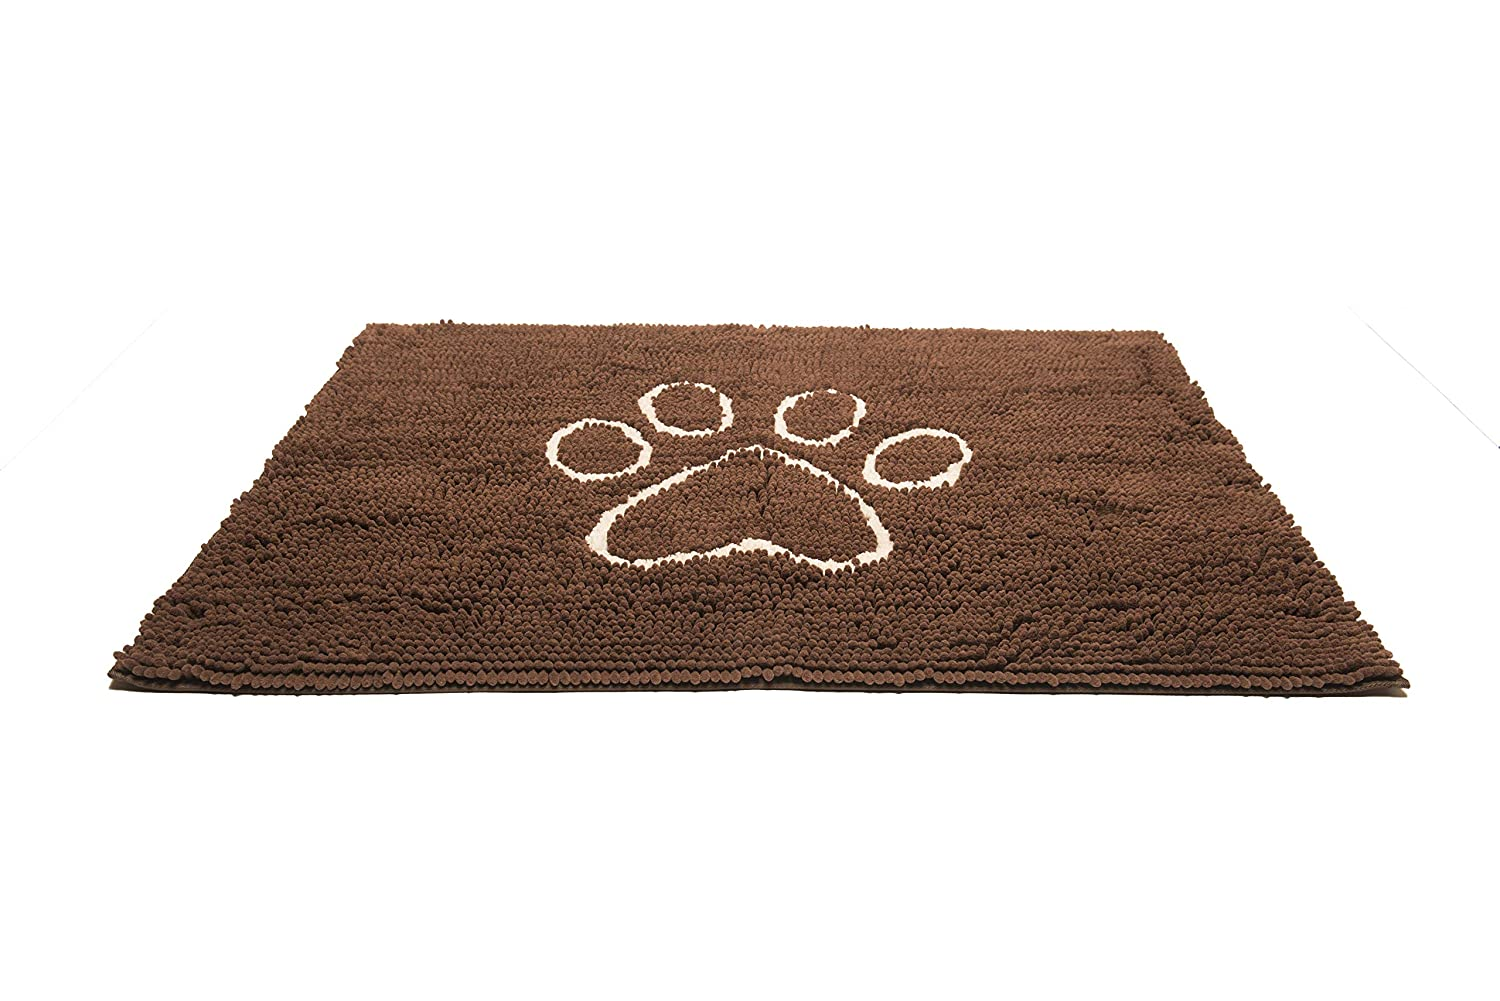 Almond Large Almond Large Dog Gone Smart Pet Products Dirty Dog Doormat Large Almond